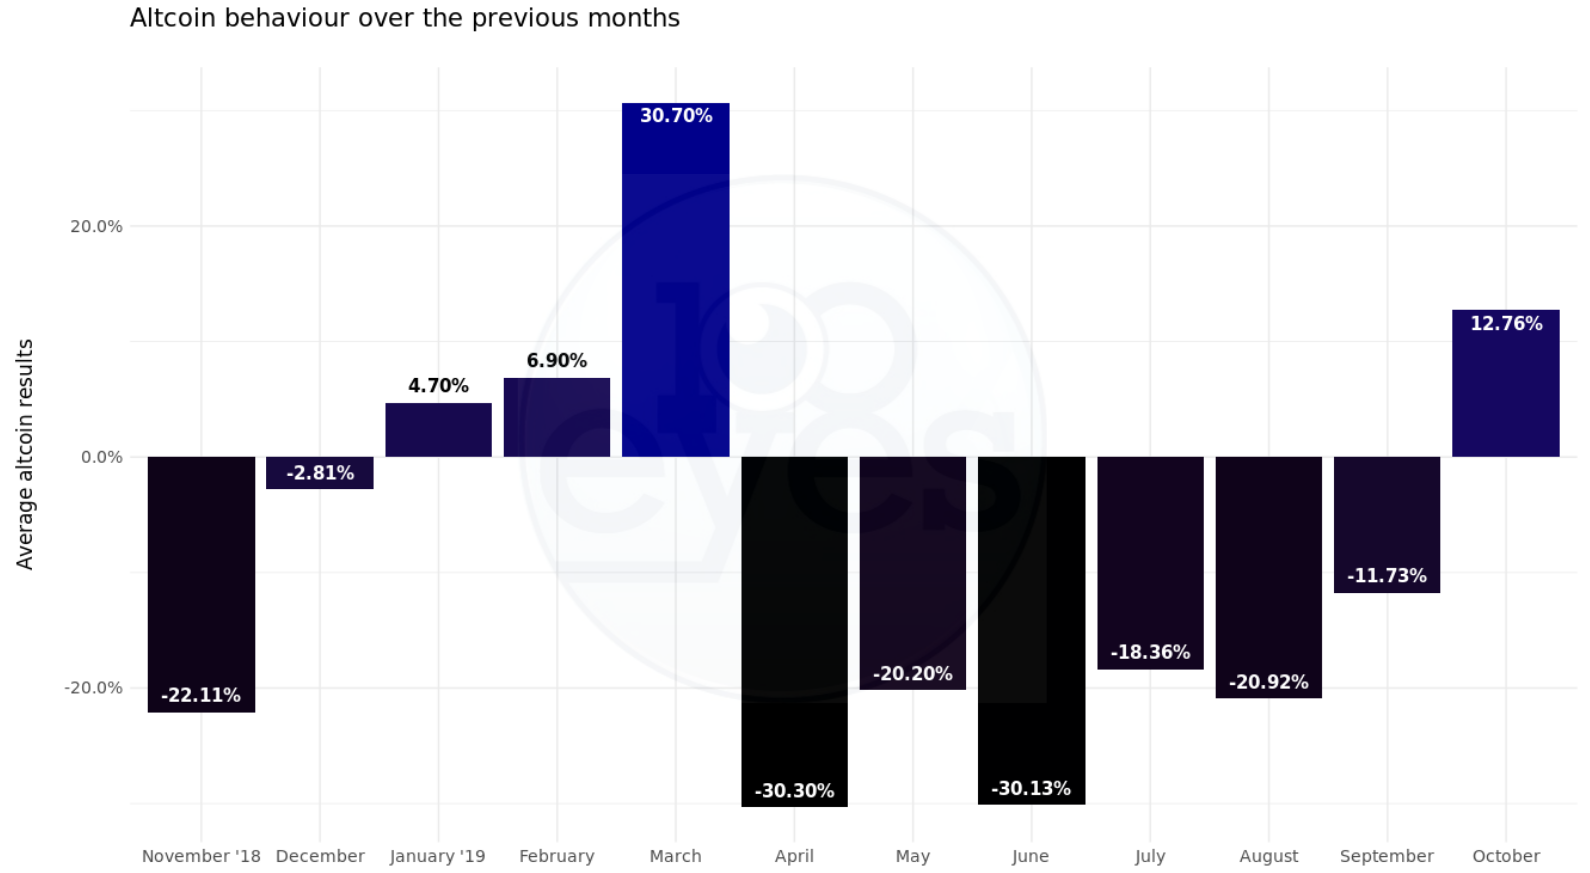 After six consecutive months of declining prices, the crypto market finally showed some life in October. Bitcoin gained 10.8% this month